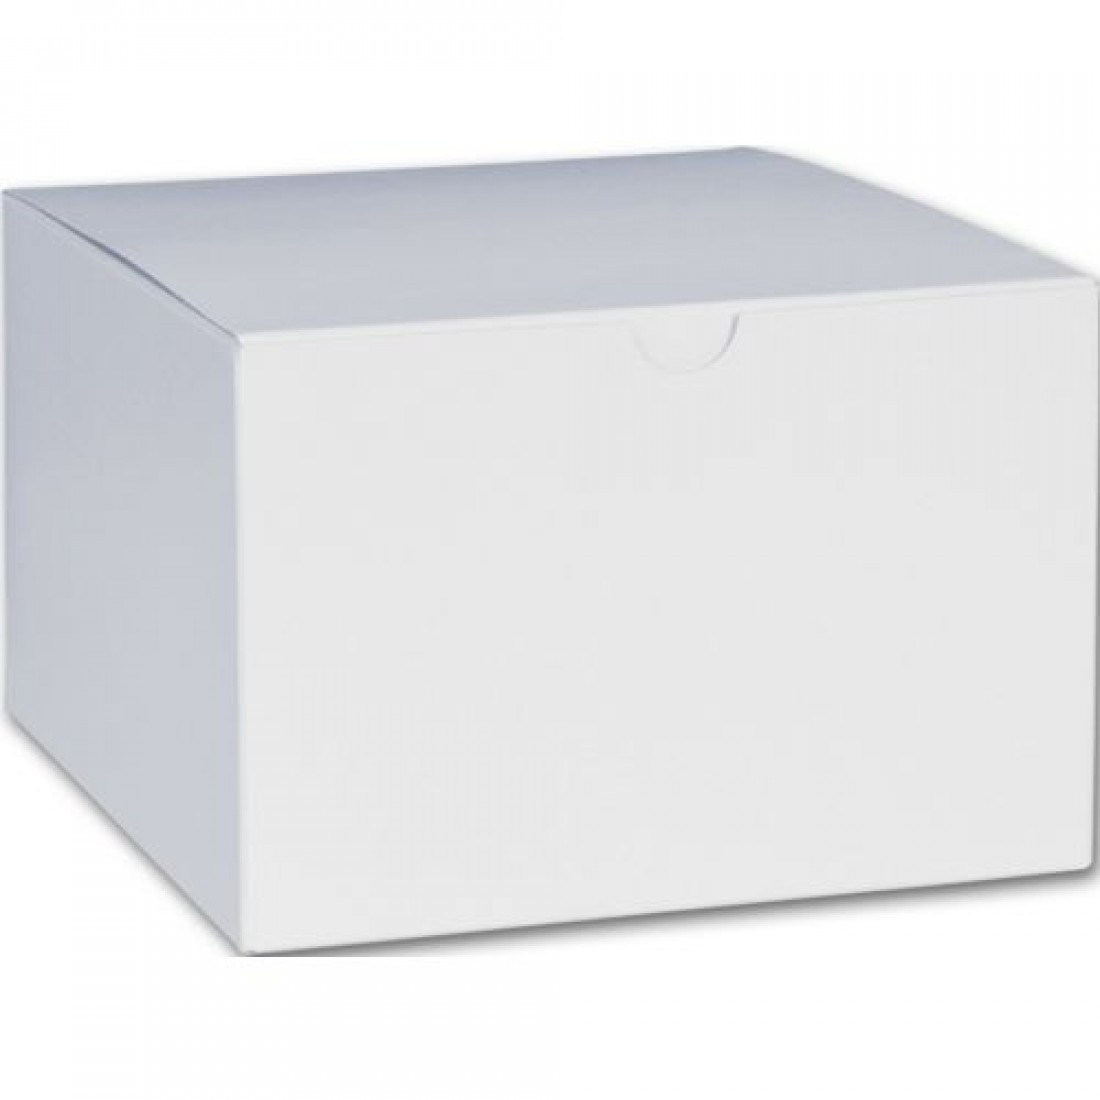 White 1PC Gift Box 6x6x4""